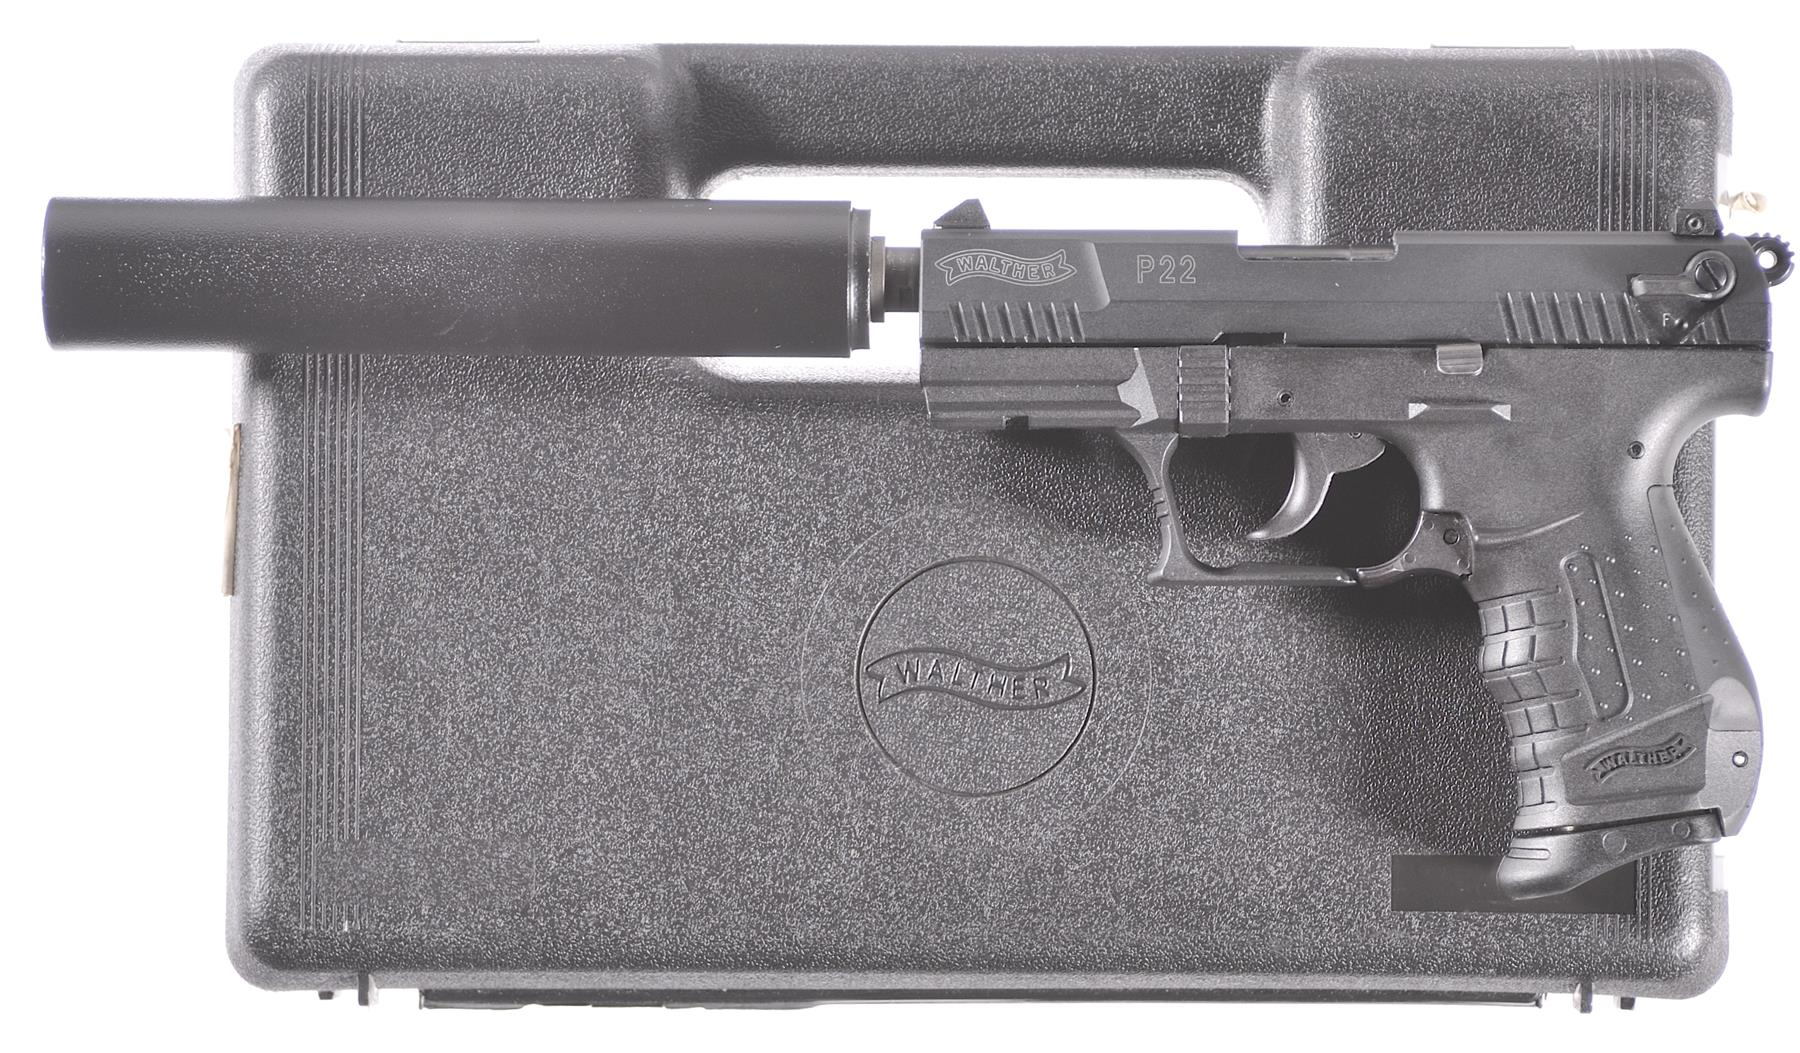 Walther P22 Semi-Automatic Pistol with T&J Tactical Suppressor